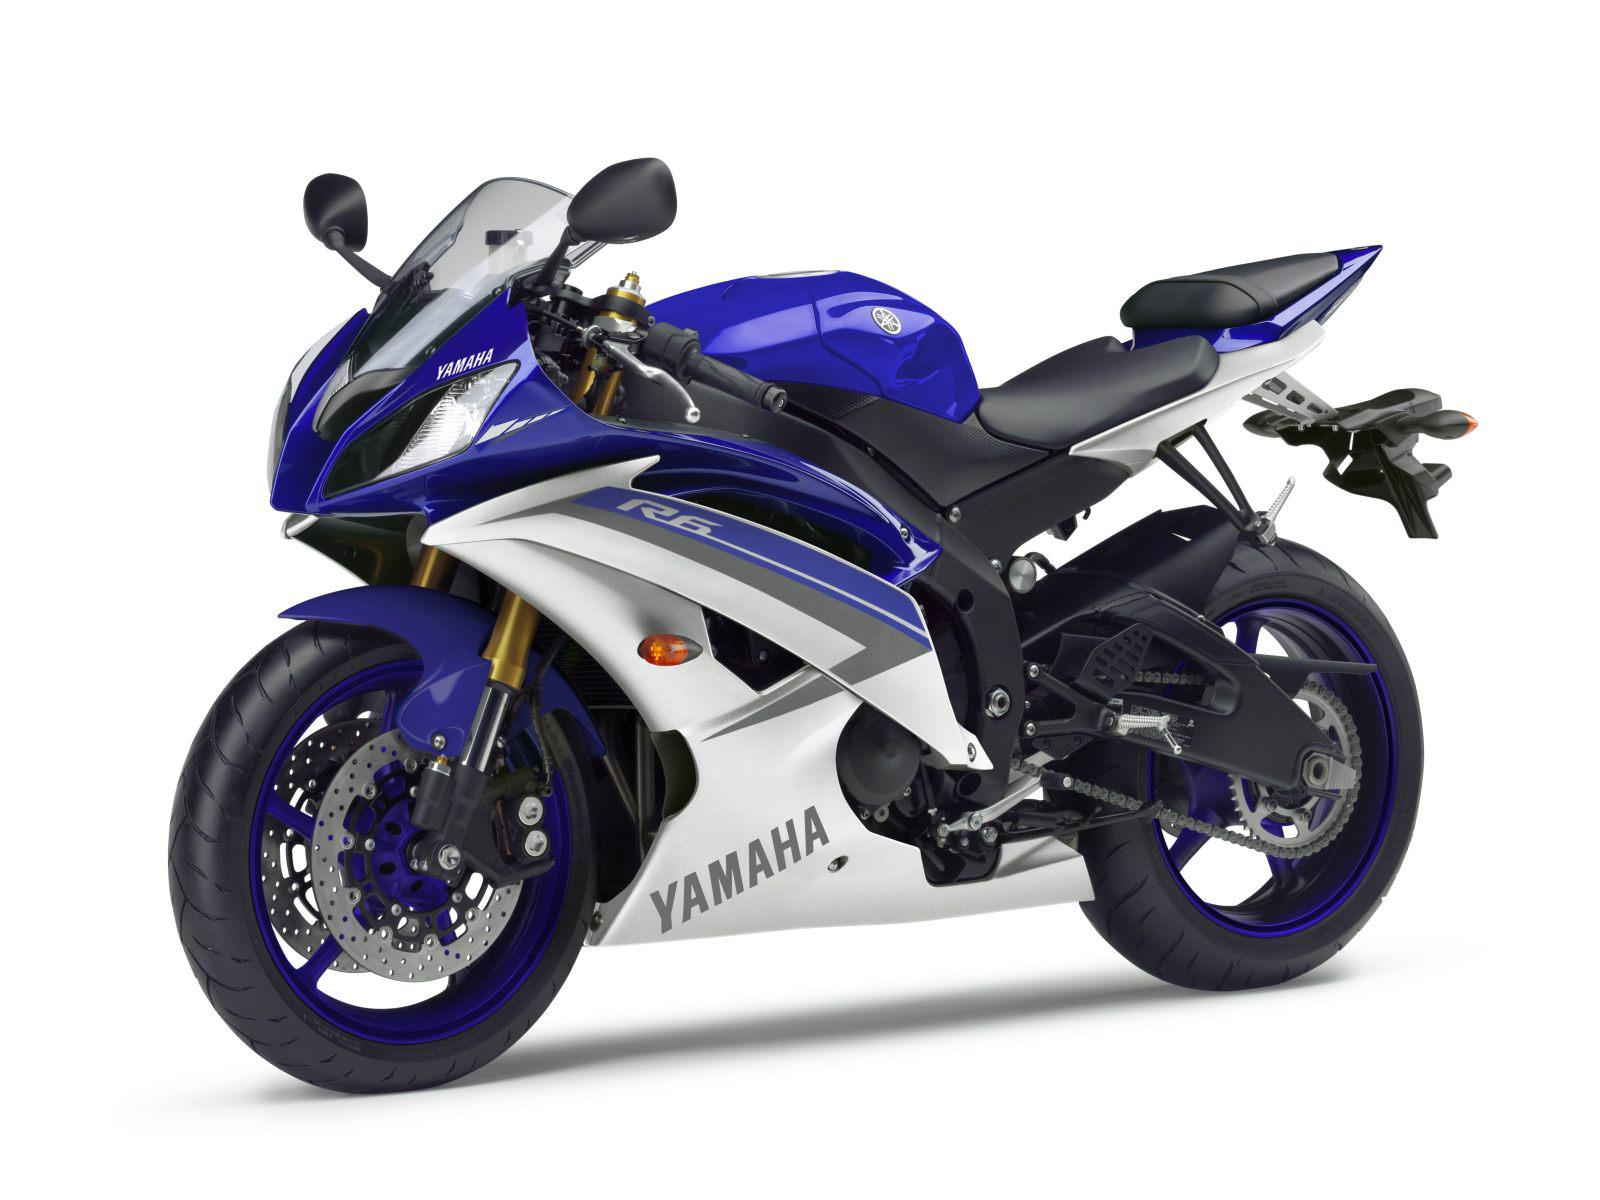 yamaha yzf r6 2015 motorrad fotos motorrad bilder. Black Bedroom Furniture Sets. Home Design Ideas